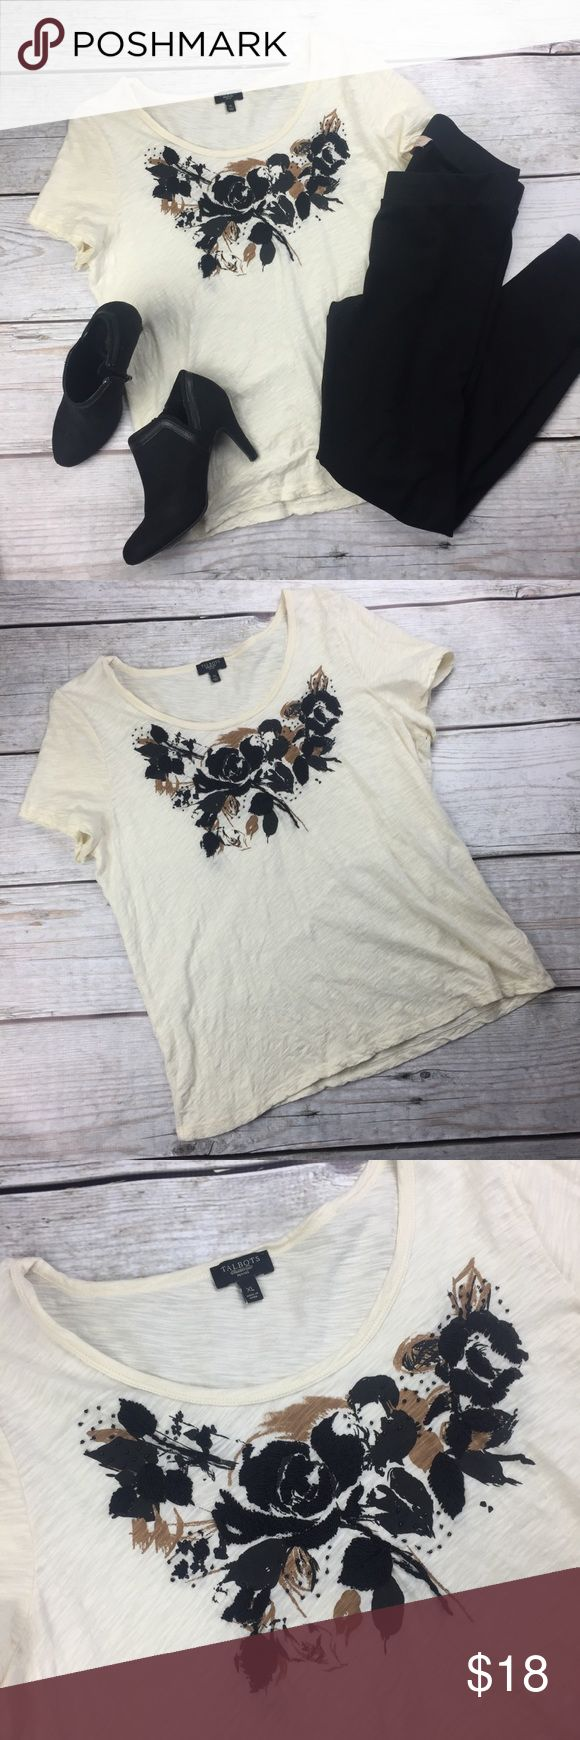 Talbots Petite Blouse- Ivory Black String- Xlarge Talbots Petite Blouse- Ivory Black String Embellished Short Sleeve Top- Xlarge  Flaw: Small dot on the back. Please see pictures.   Material: 100% cotton  (No other item pictured for sale)  12-1017 Talbots Tops Blouses